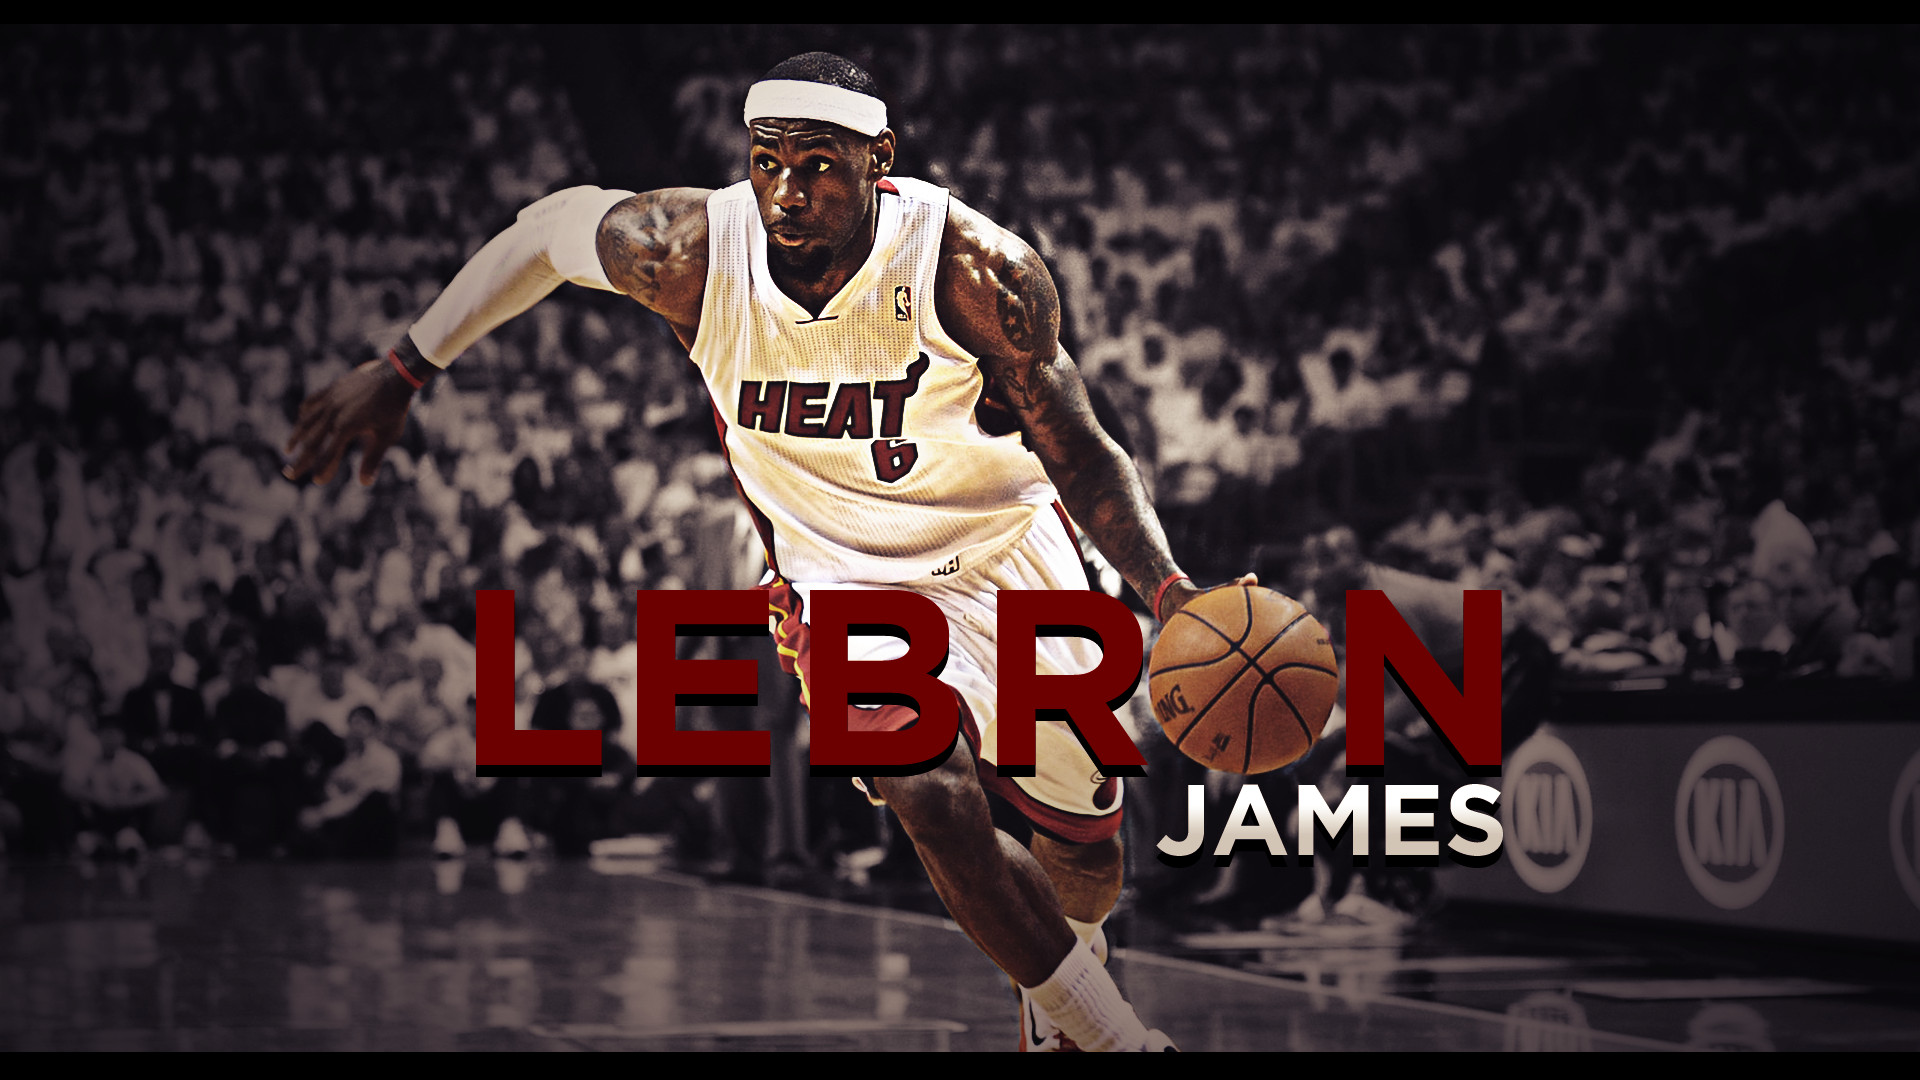 Lebron James Wallpaper Miami Heat 1920x1080